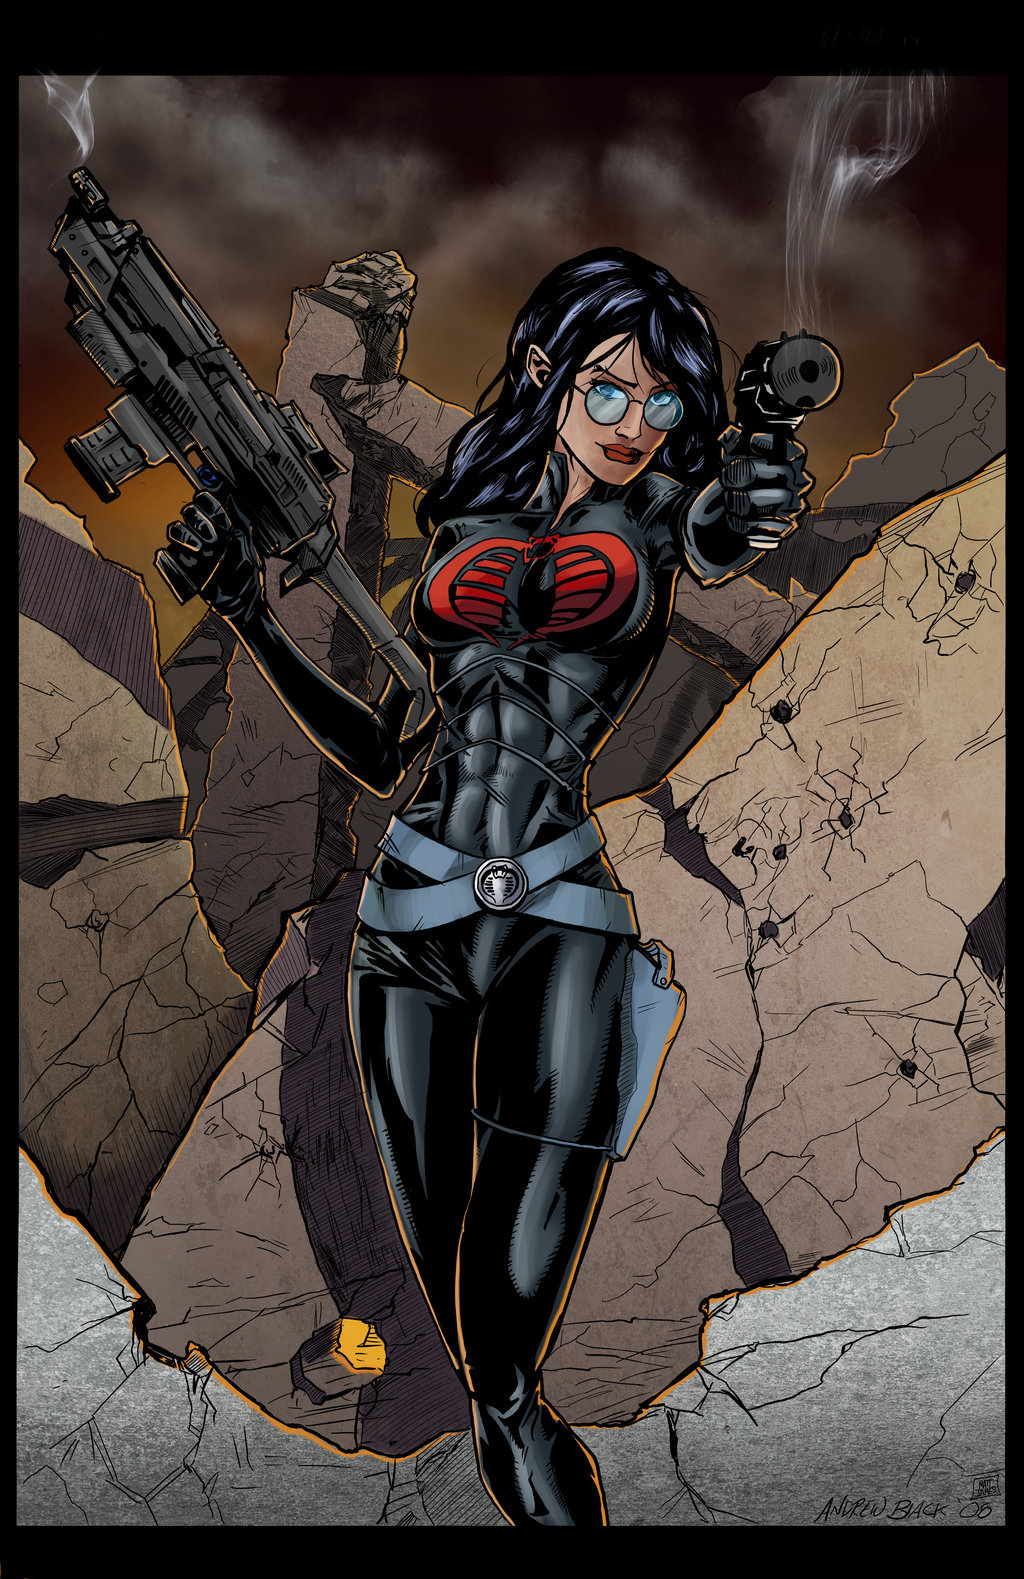 Matt james baroness by mattjamescomicarts d8b0ds4